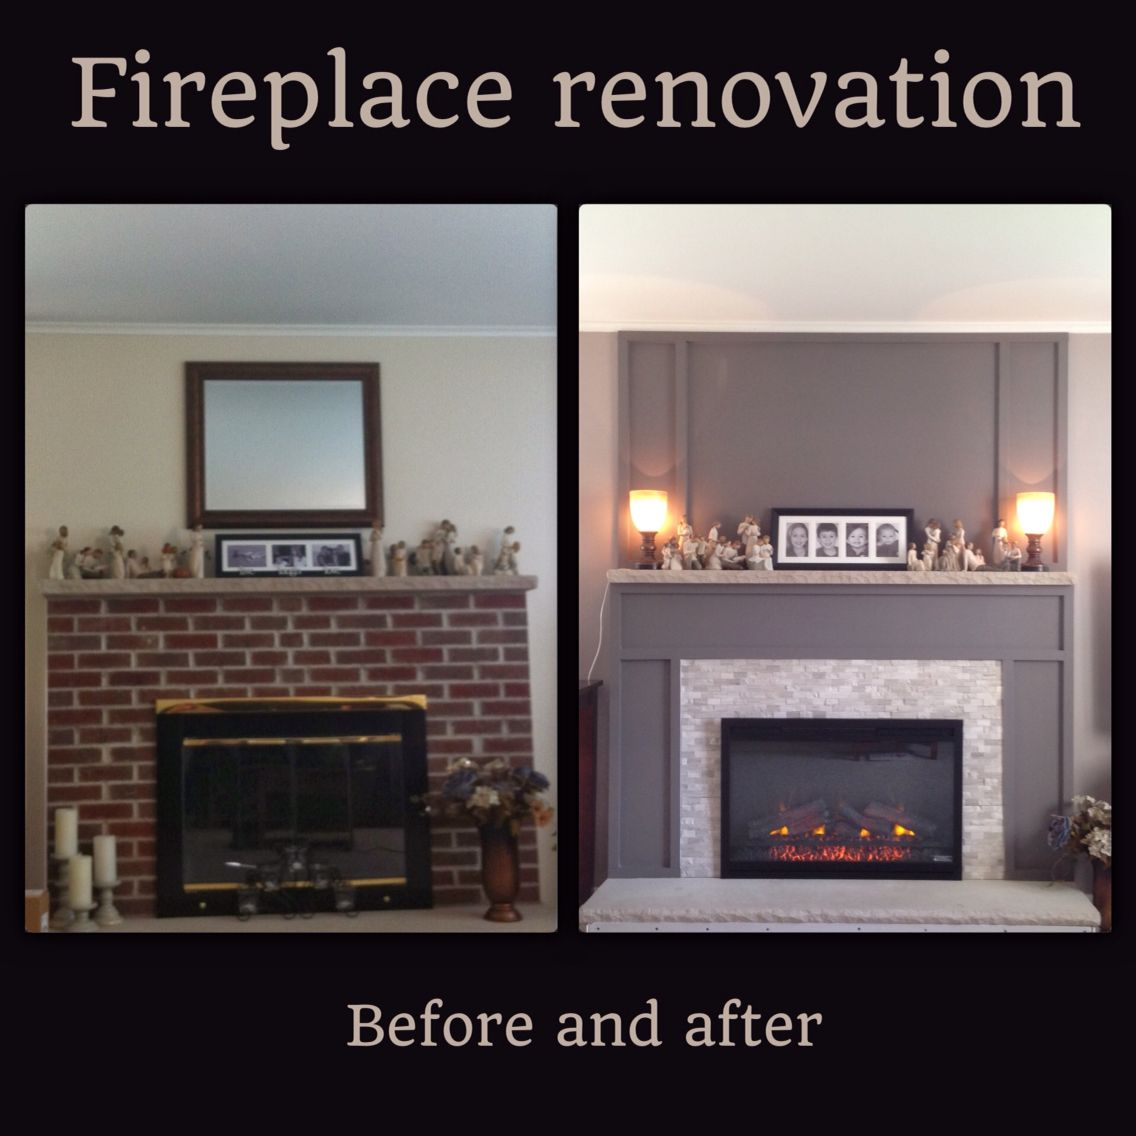 brick fireplace renovation cover old brick with drywall screw into rh pinterest com